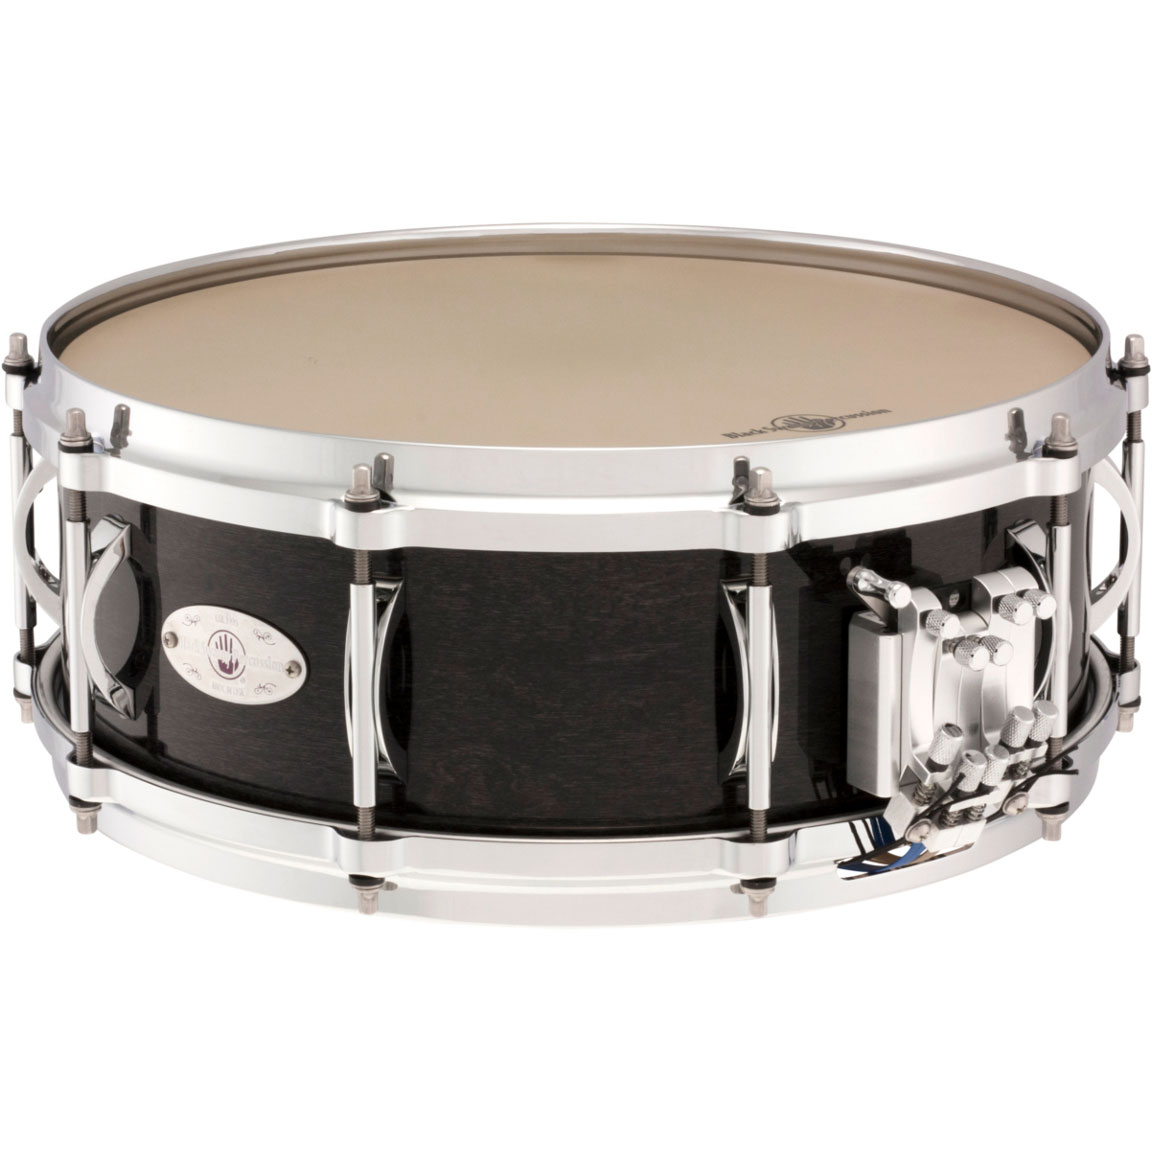 "Black Swamp 5"" x 14"" Multisonic Maple Concert Snare Drum with Die-Cast Hoops"